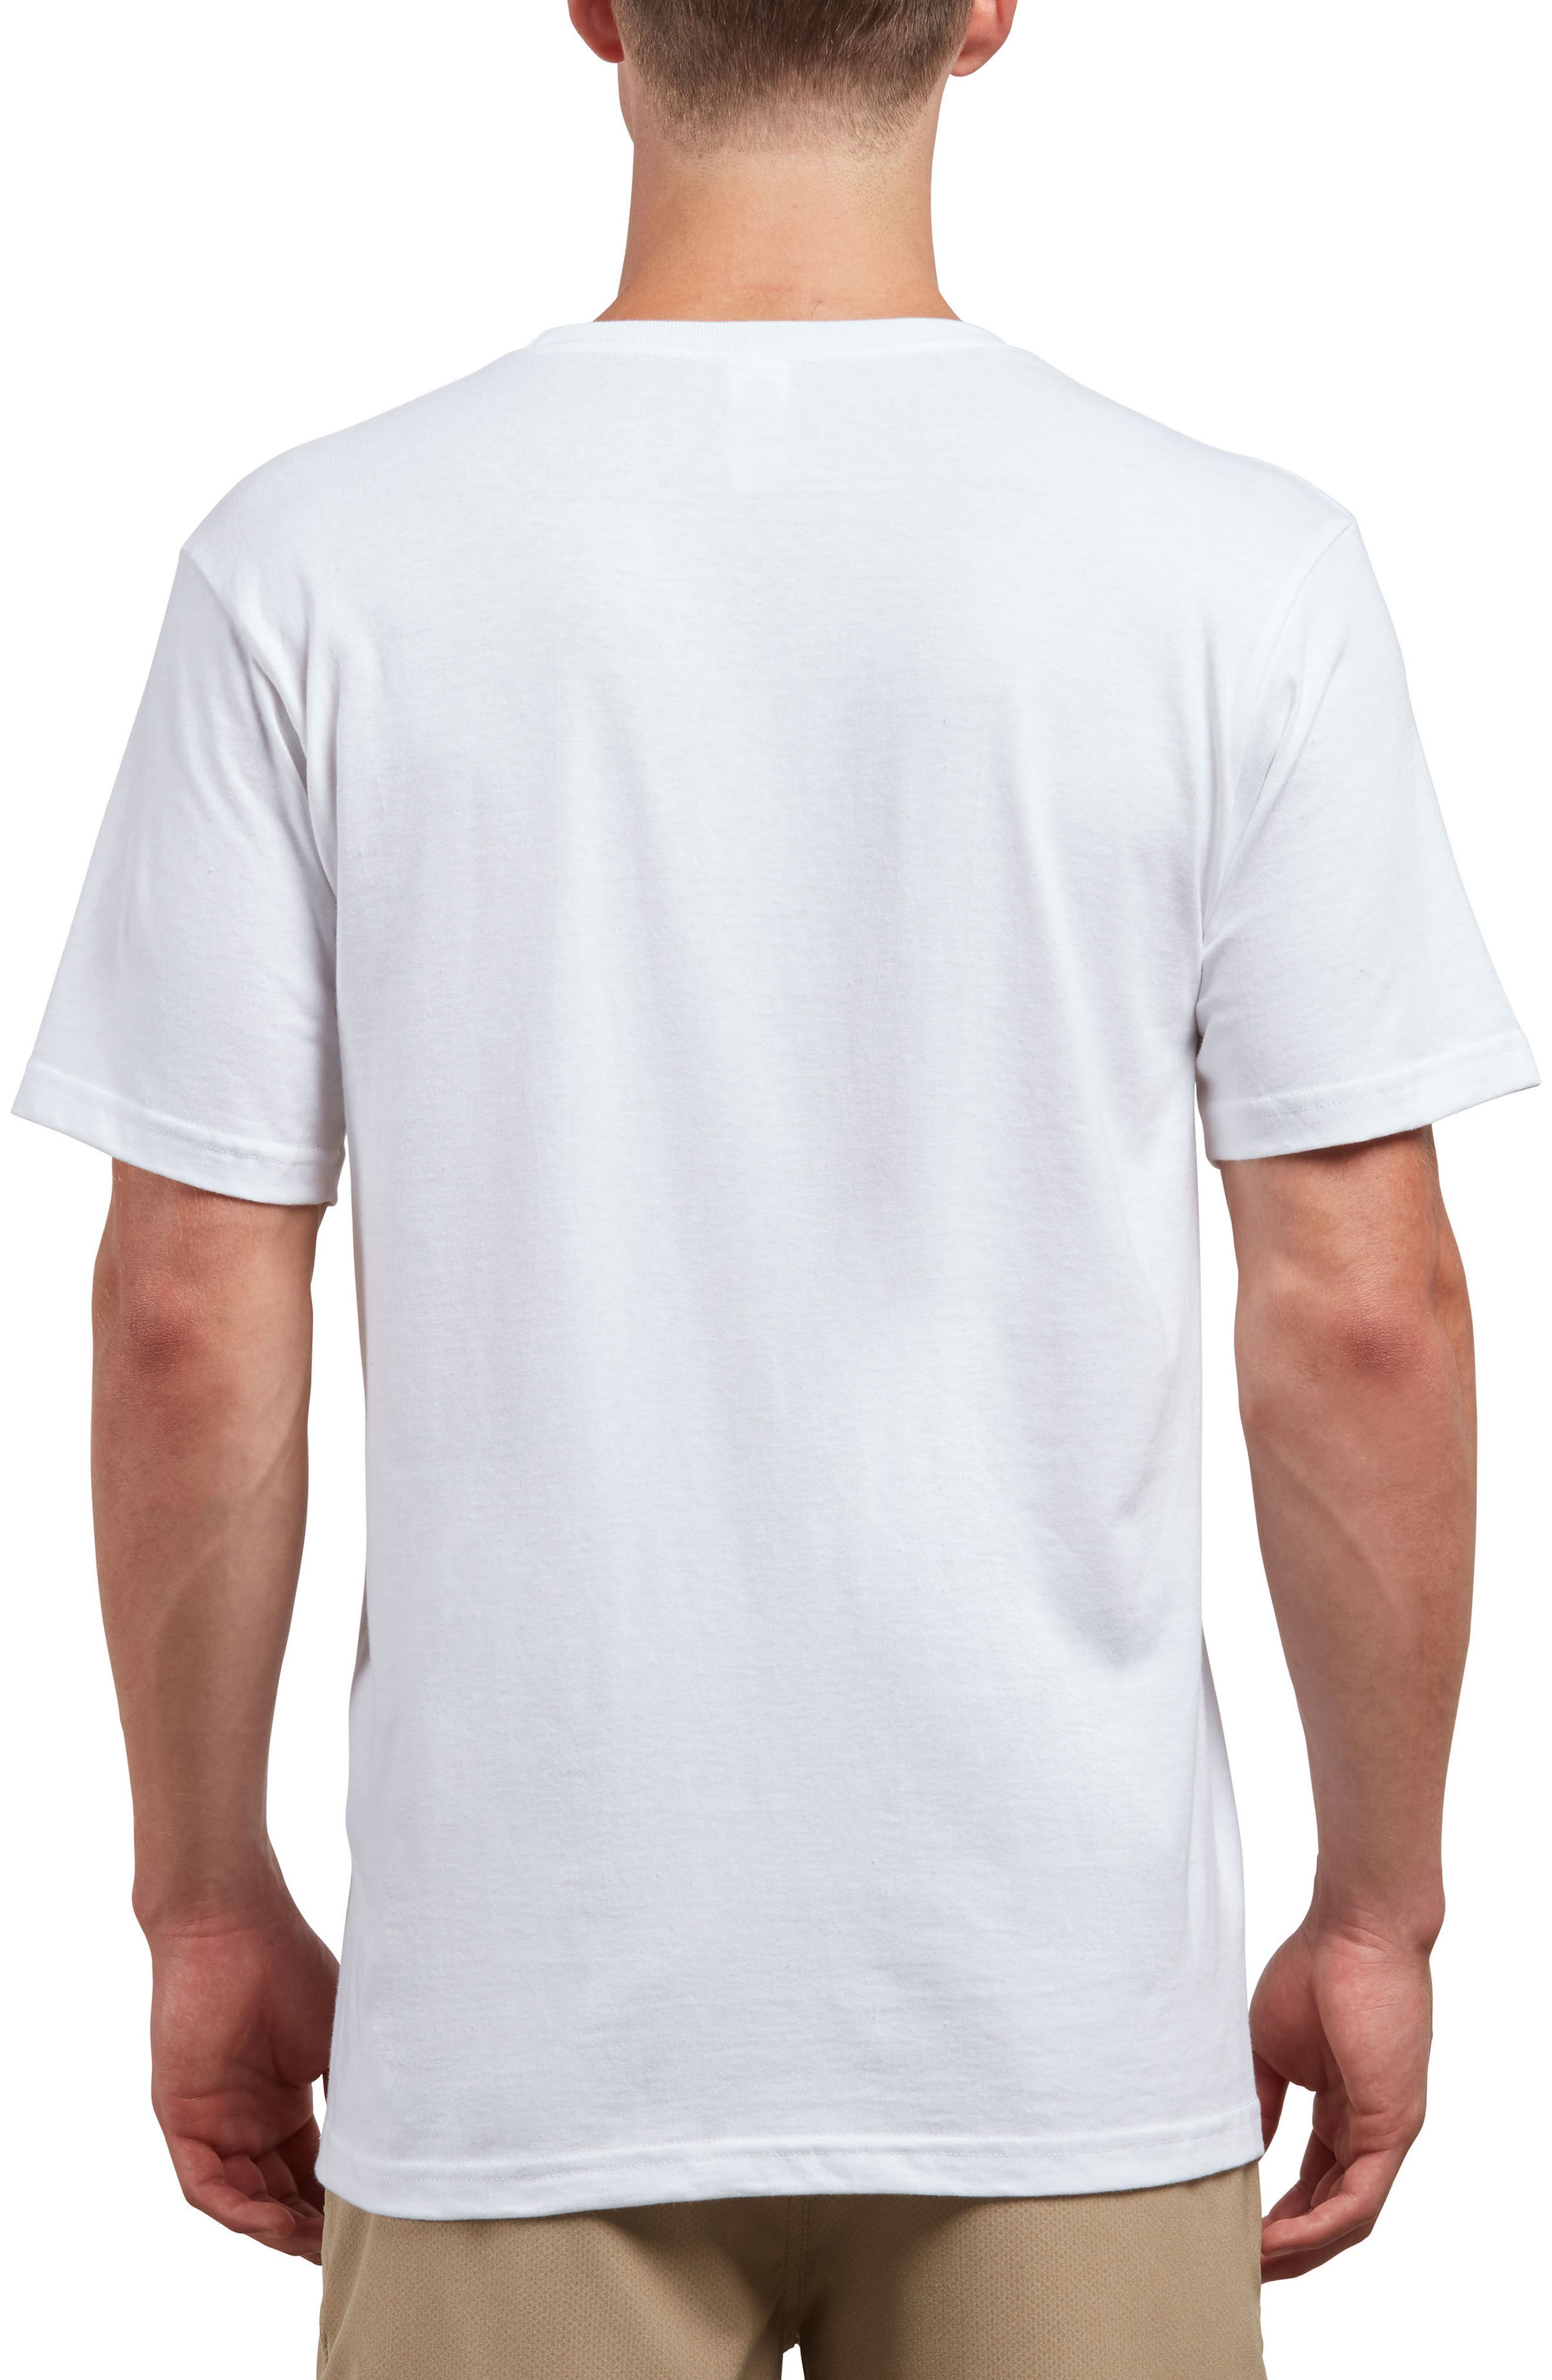 Same Difference T-Shirt,                             Alternate thumbnail 2, color,                             White